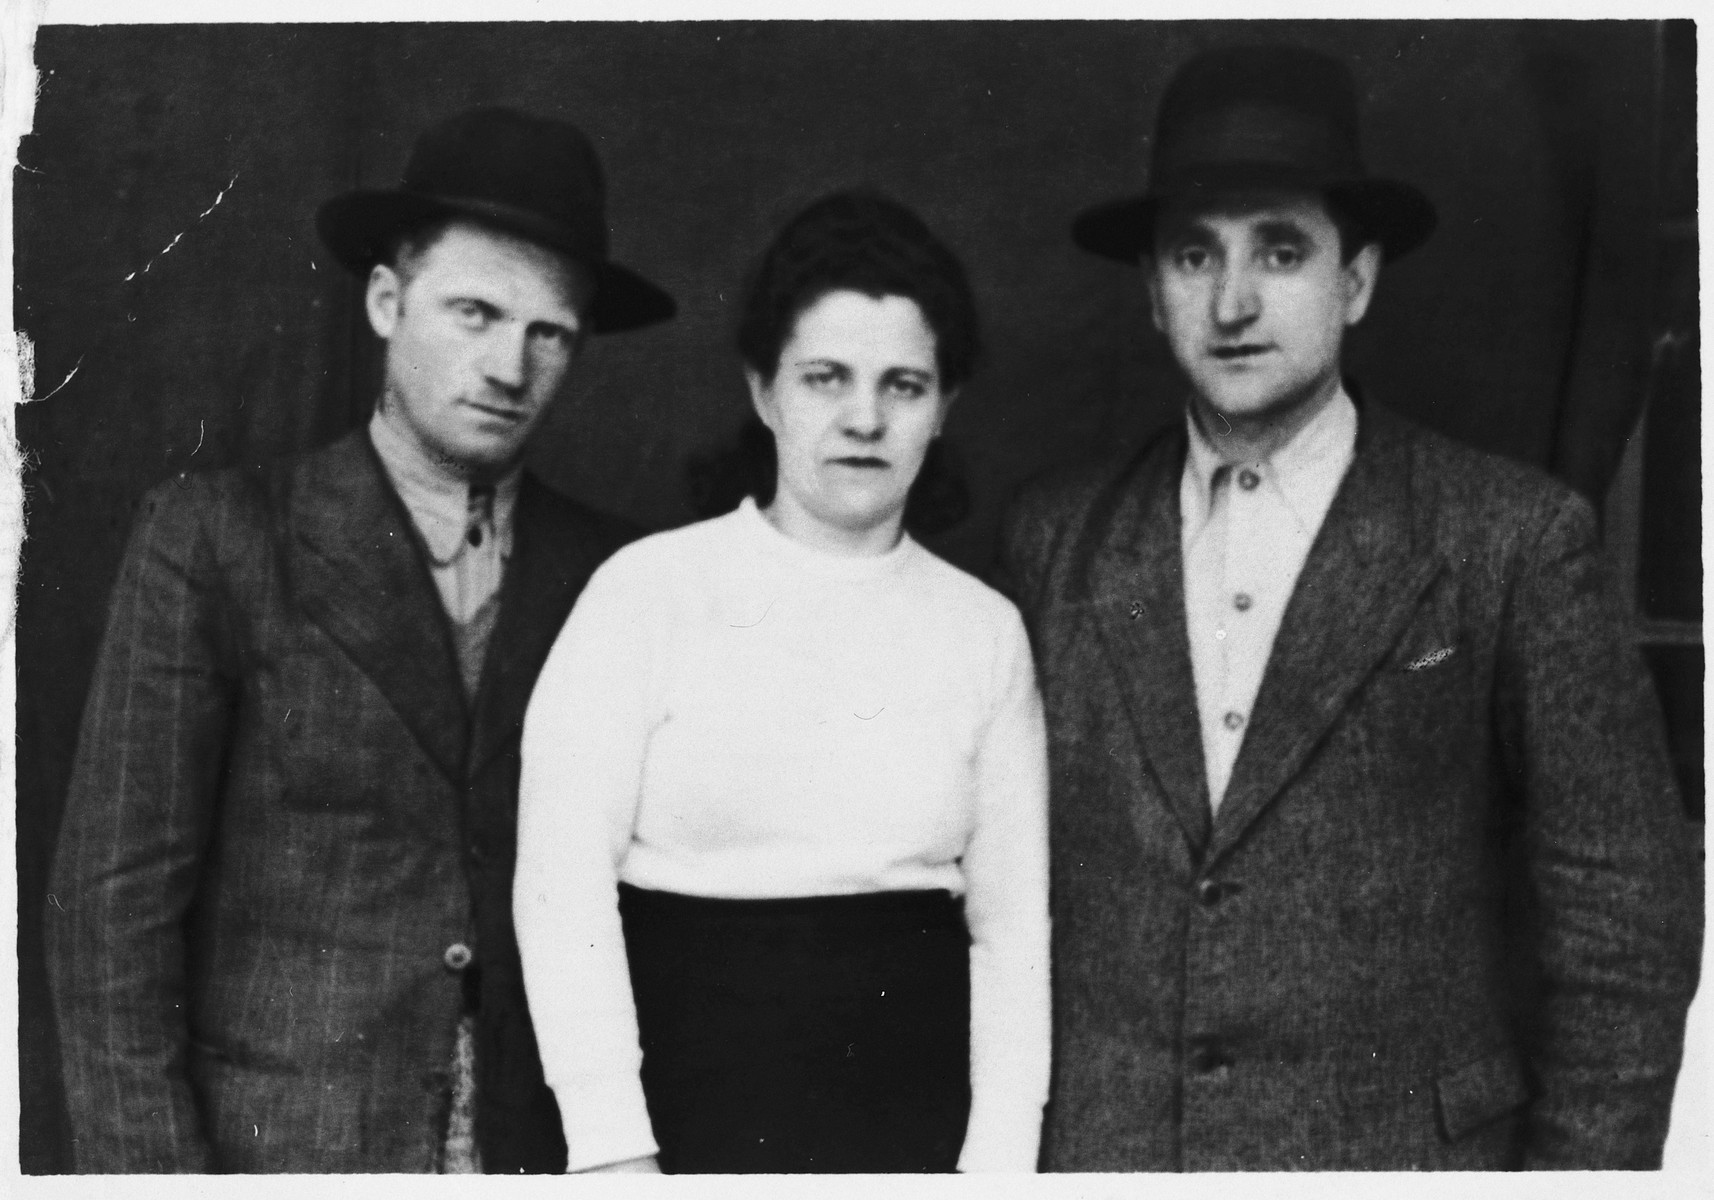 Portrait of three members an Orthodox Romanian family taken on the eve of World War II.  Pictured from the right are Moshe David Pollack, his wife Lotte, and his brother Shmuel Eli.